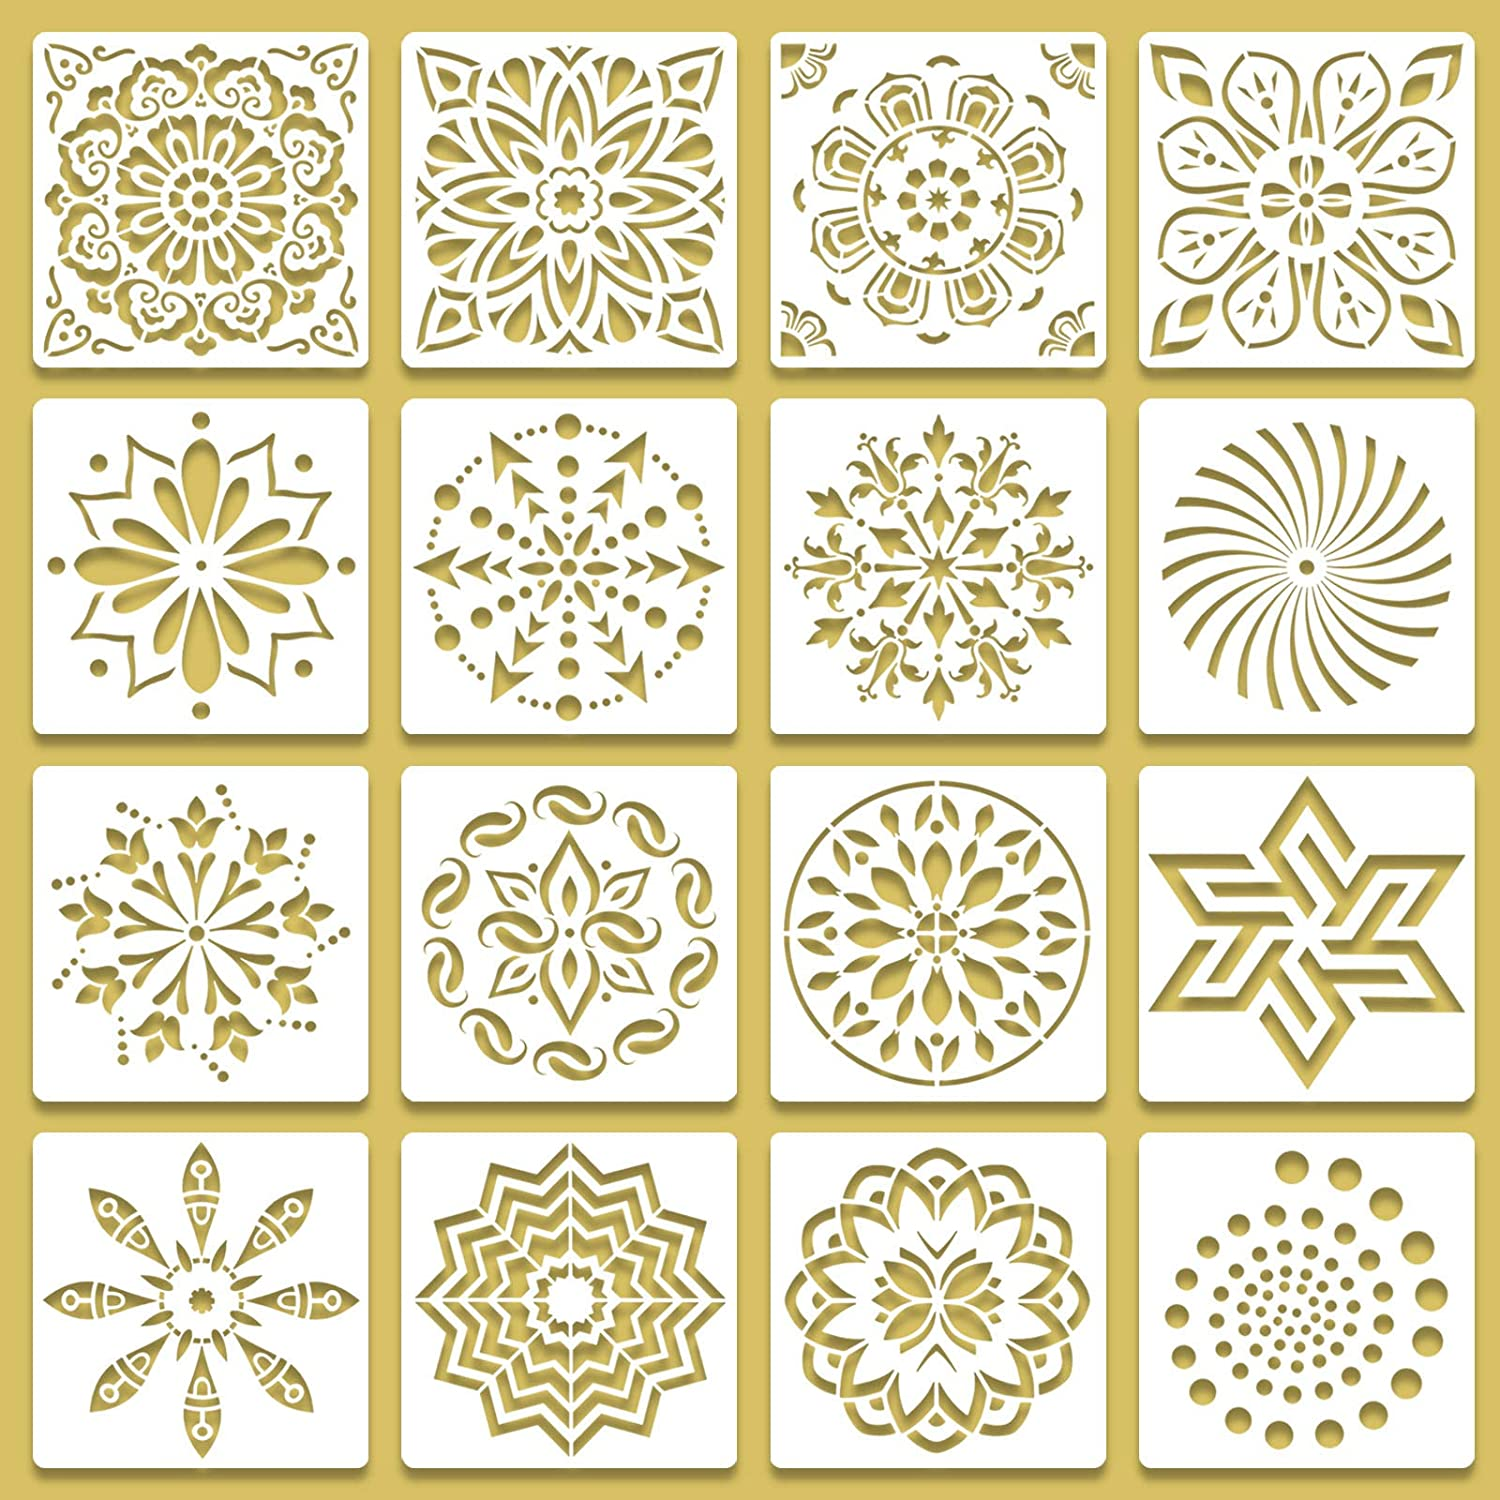 16 Pack Mandala-Stencils for Painting 6 x 6 Inch, Reusable Geometiric-Stencils-Templates for Dot Painting, Rocks, Wall-Stencils for Painting Pattern on Furniture, Airbrush, Tiles, Floors, Canvas